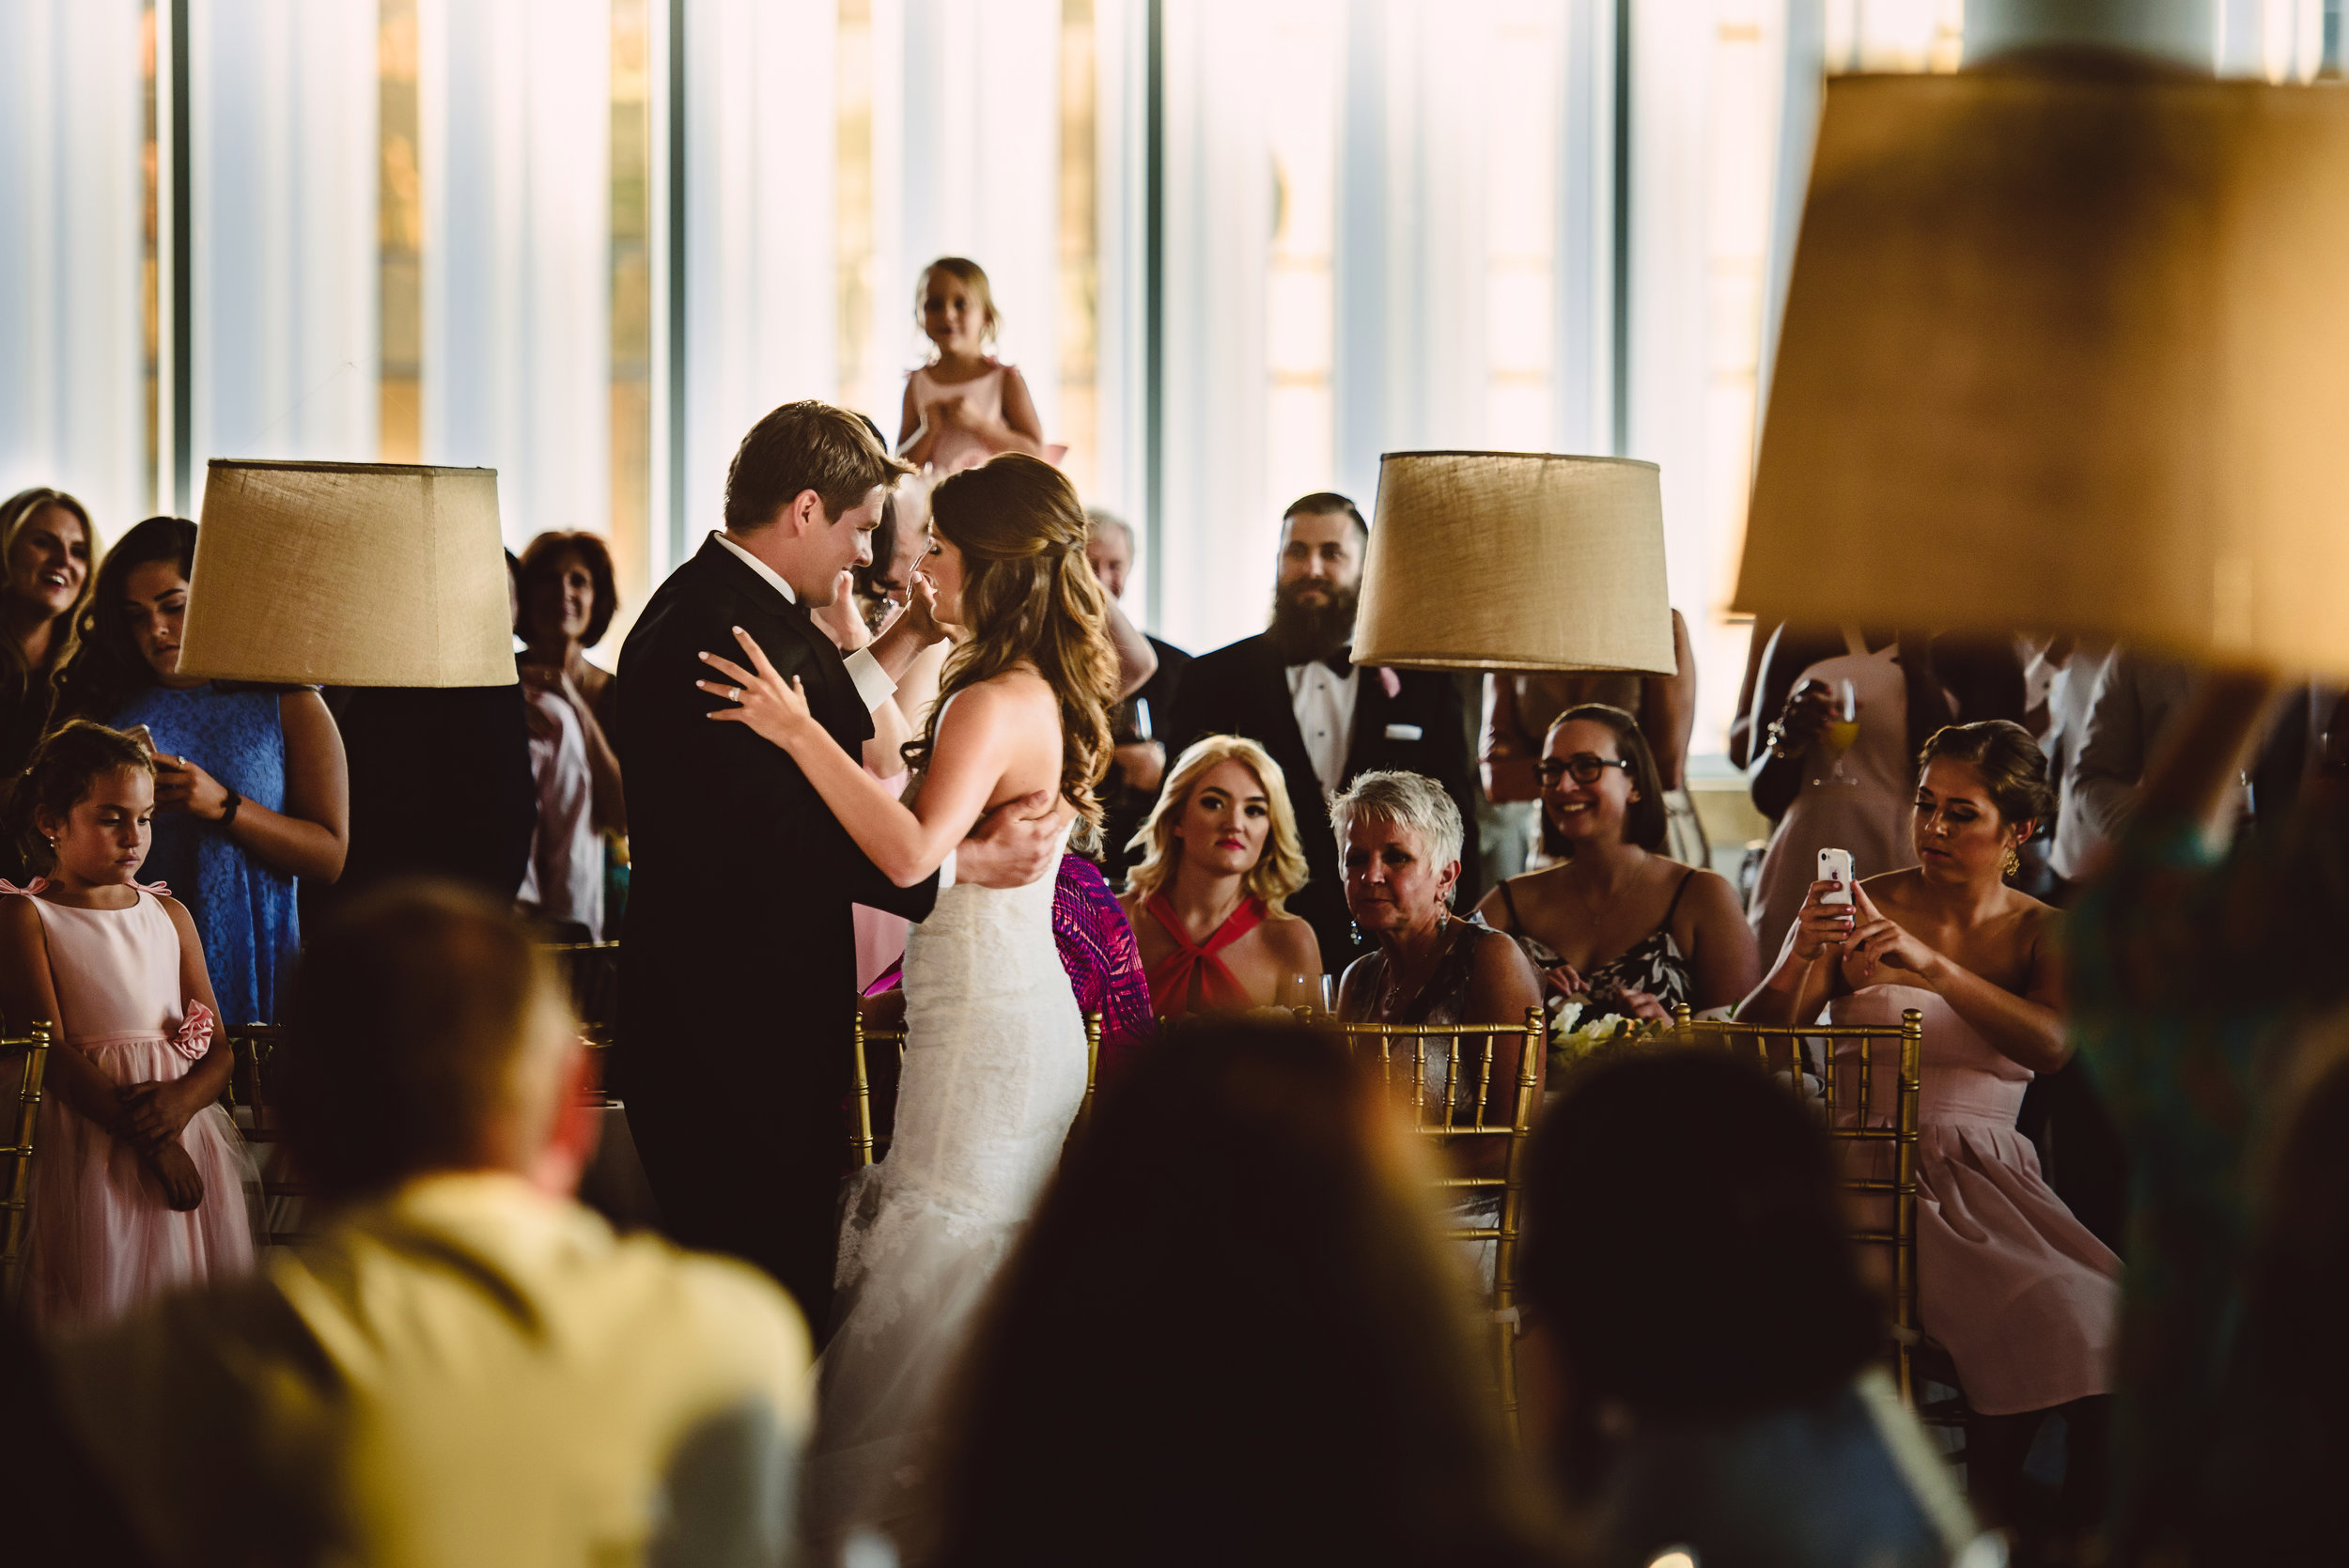 Mint Museum Uptown wedding in Charlotte, North Carolina by The Graceful Host, First dance